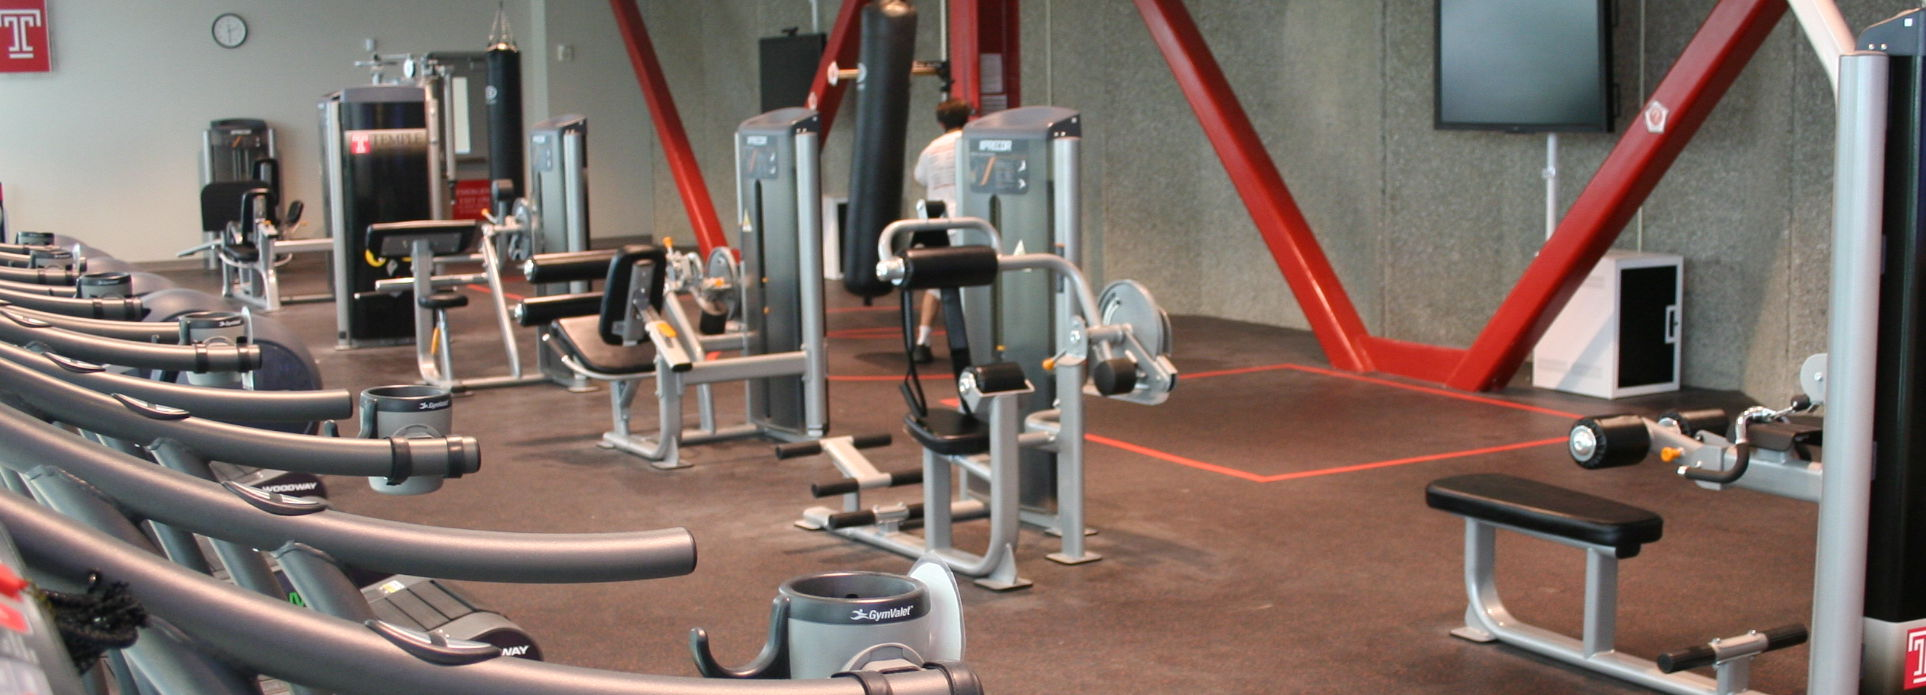 Interior of the fitness mezzanine